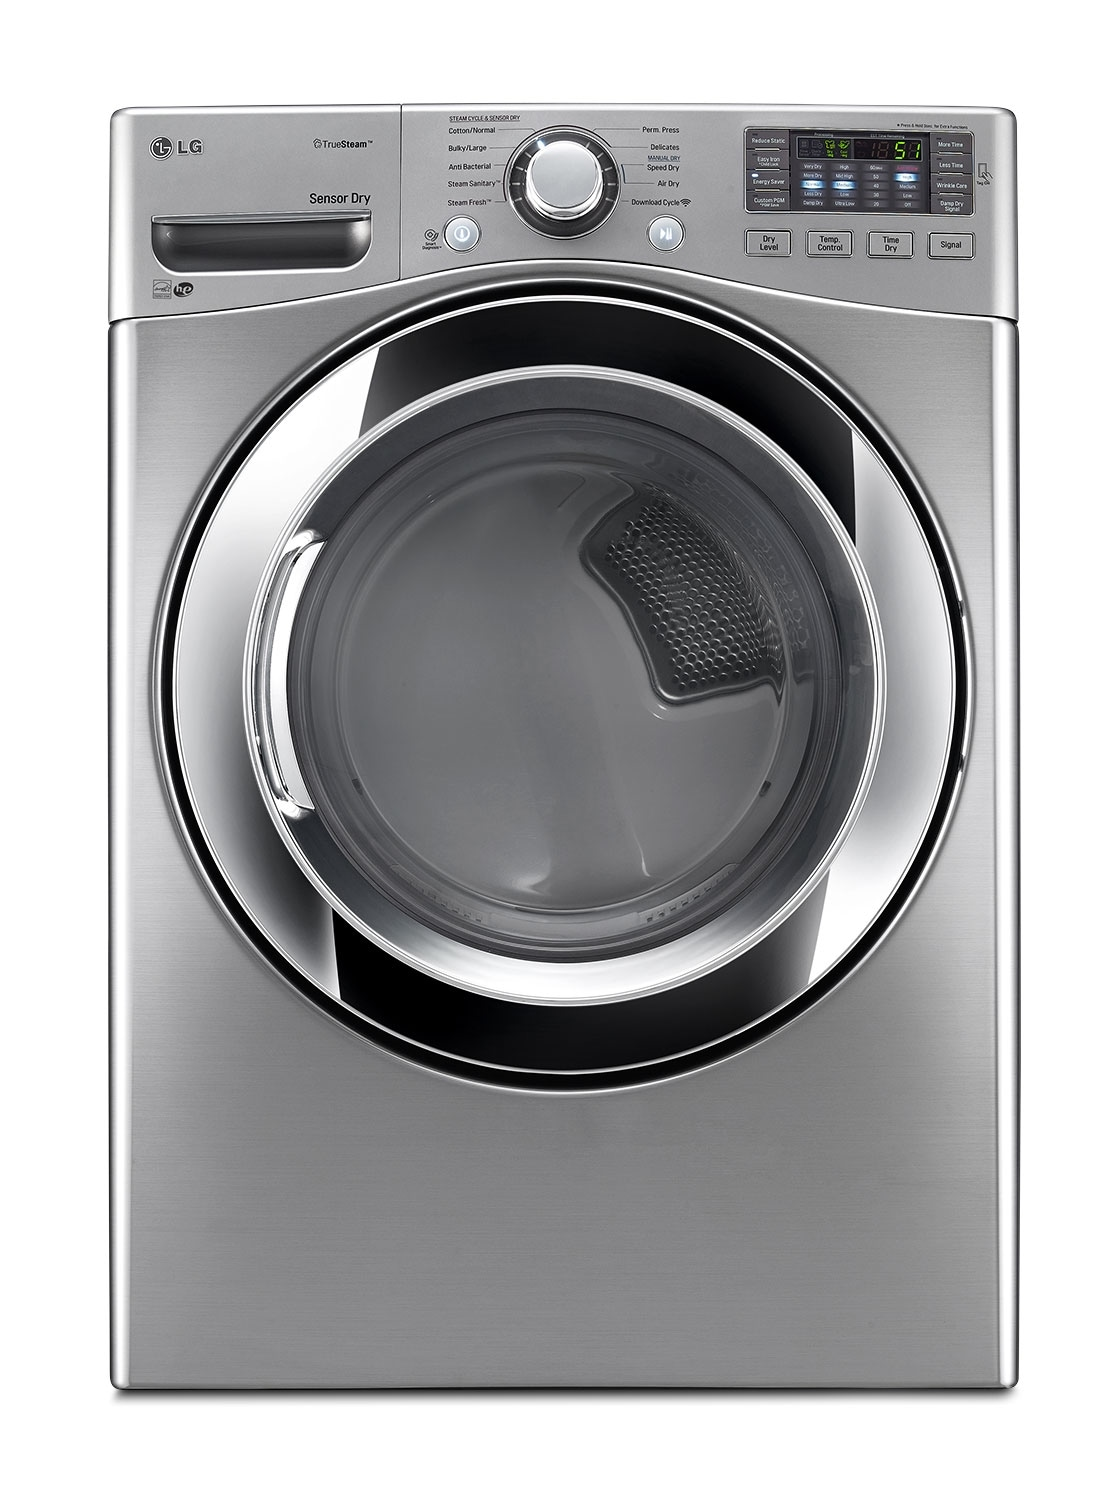 Washers and Dryers - LG Graphite Steel Electric Dryer (7.4 Cu. Ft.) - DLEX3370V